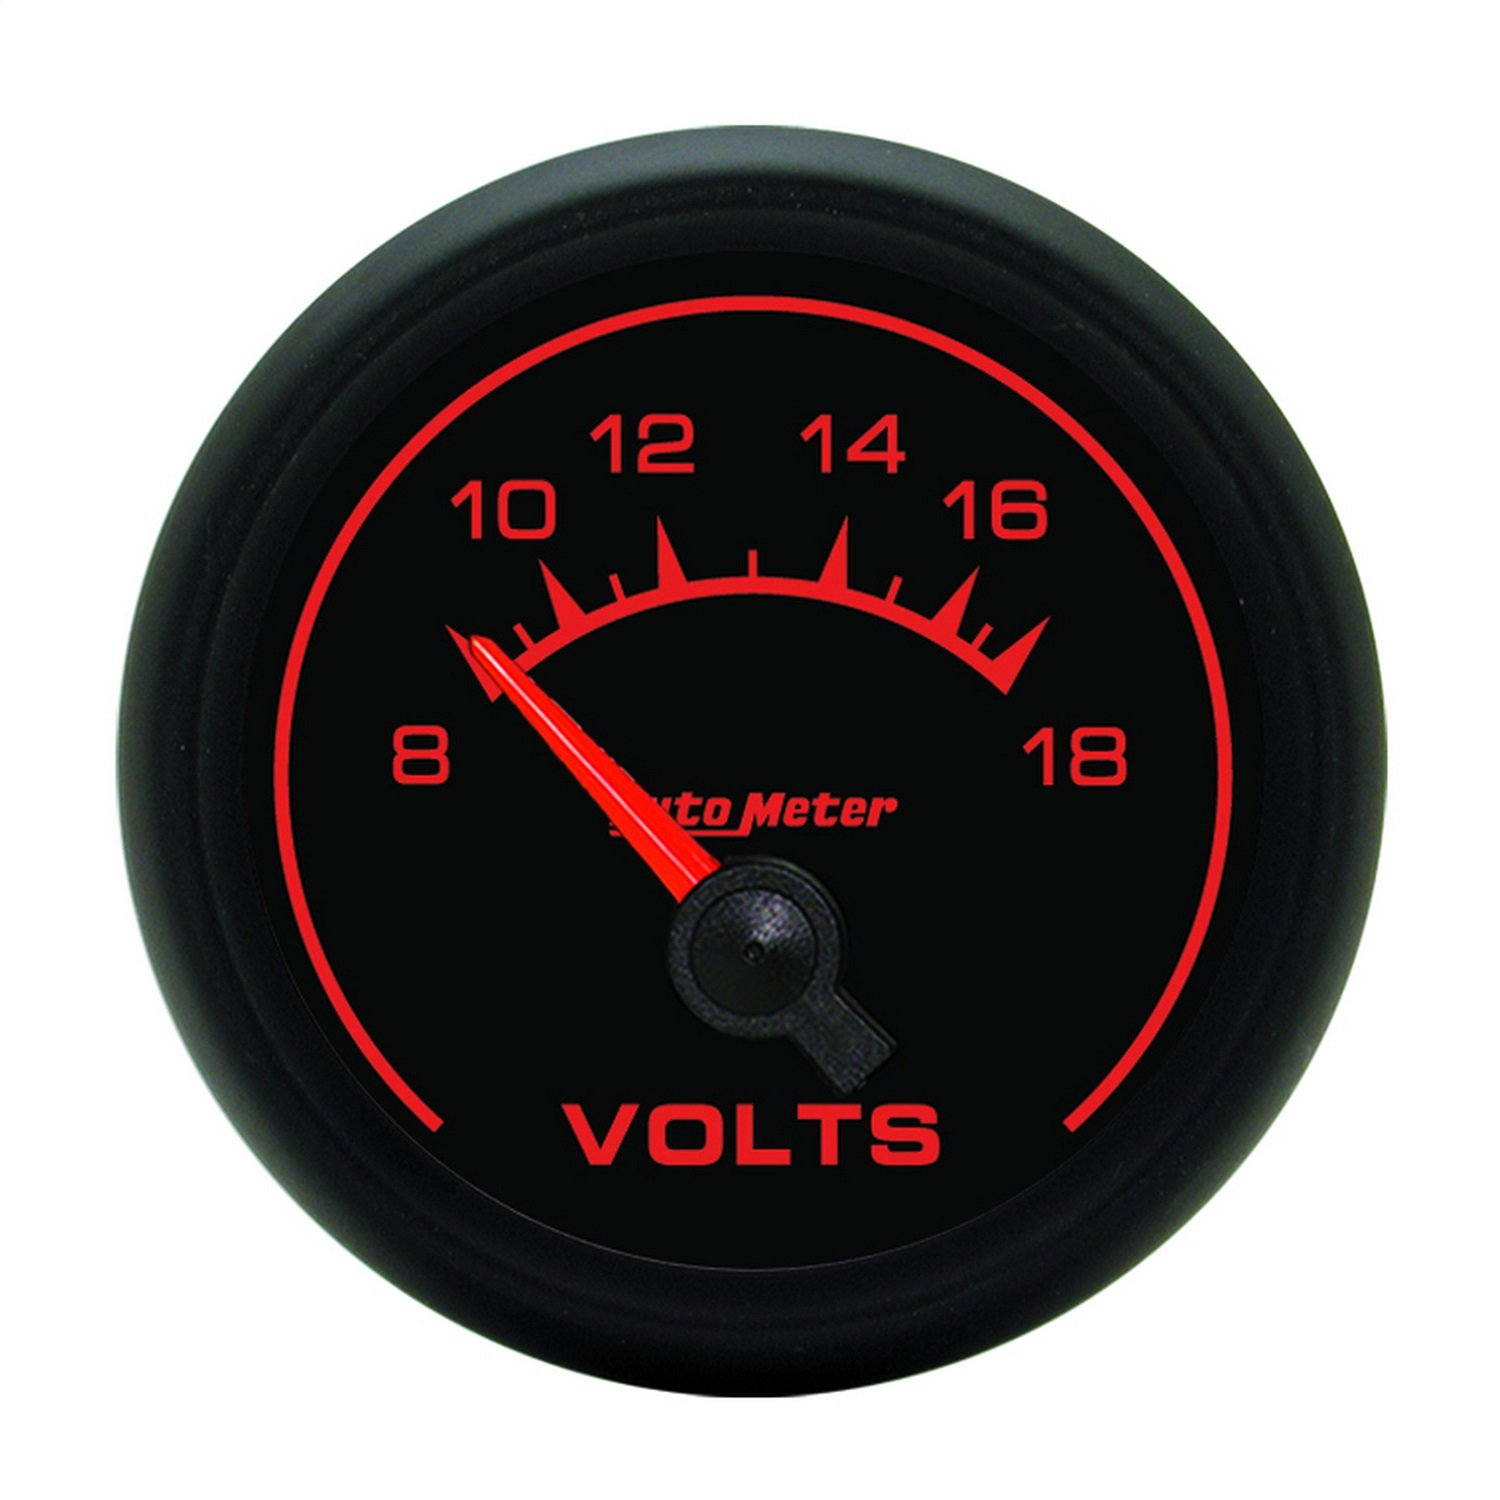 Auto Meter 5992 ES 2-1/16'' 8-18V Short Sweep Electric Voltmeter by AUTO METER